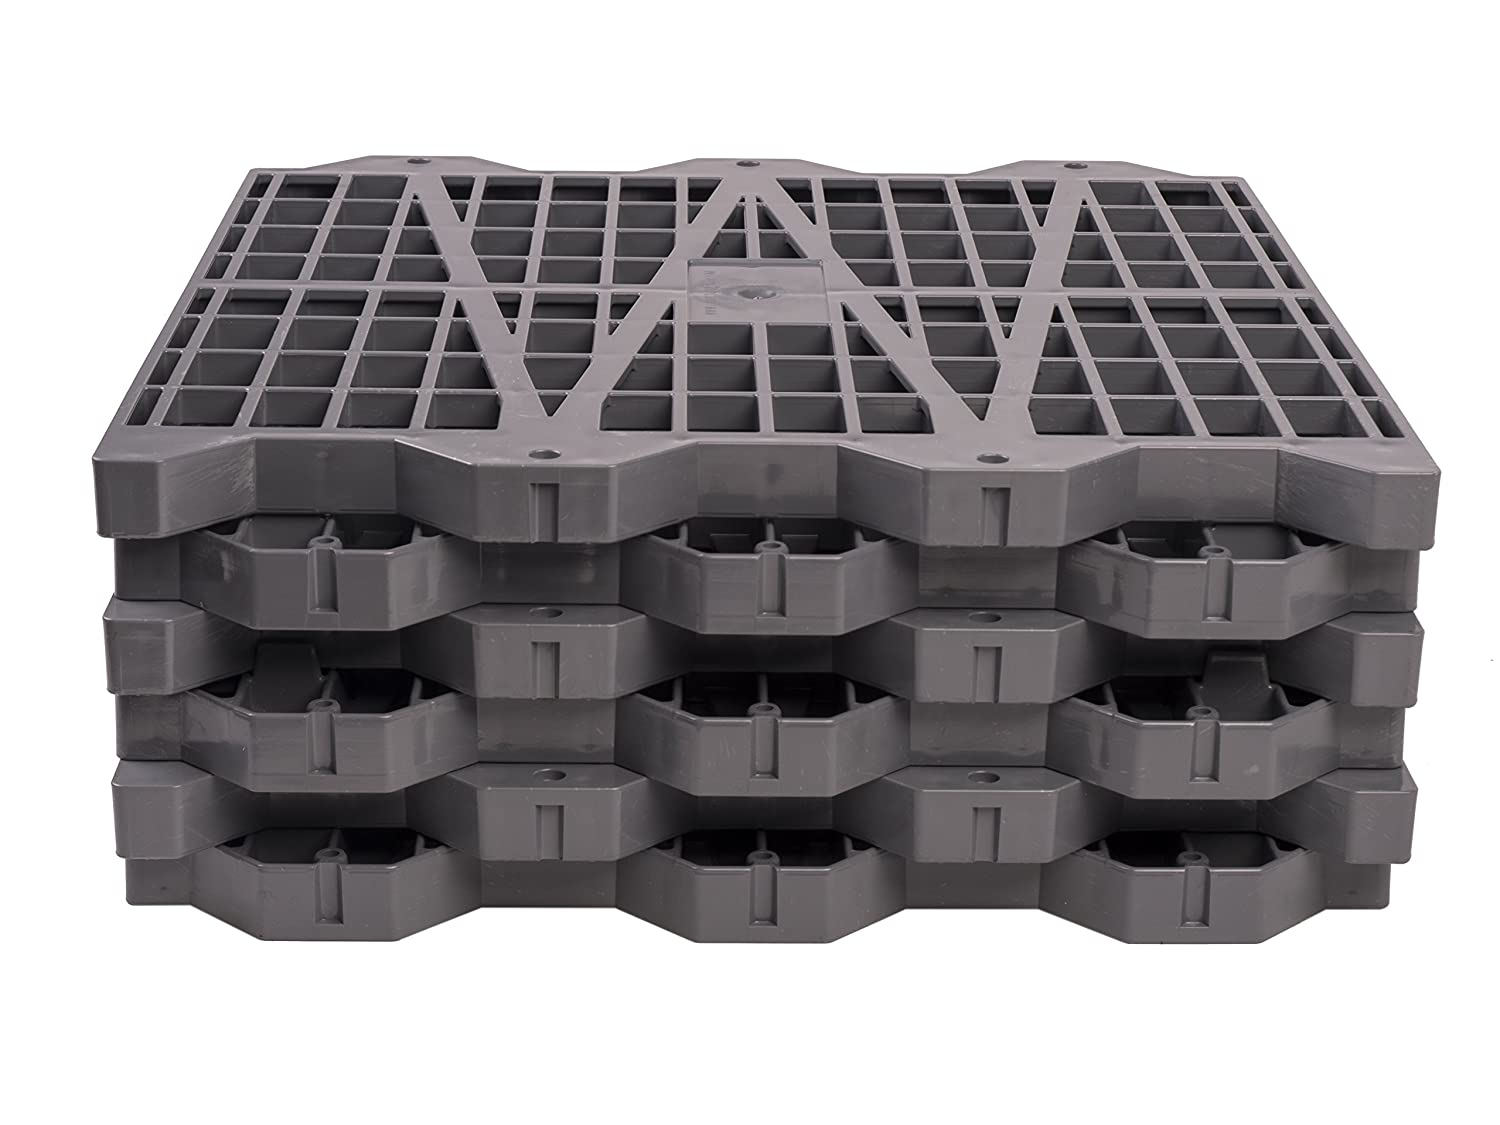 Attic Dek Metro Products 350405 for 16-Inch Joist Centers, 6-Pack